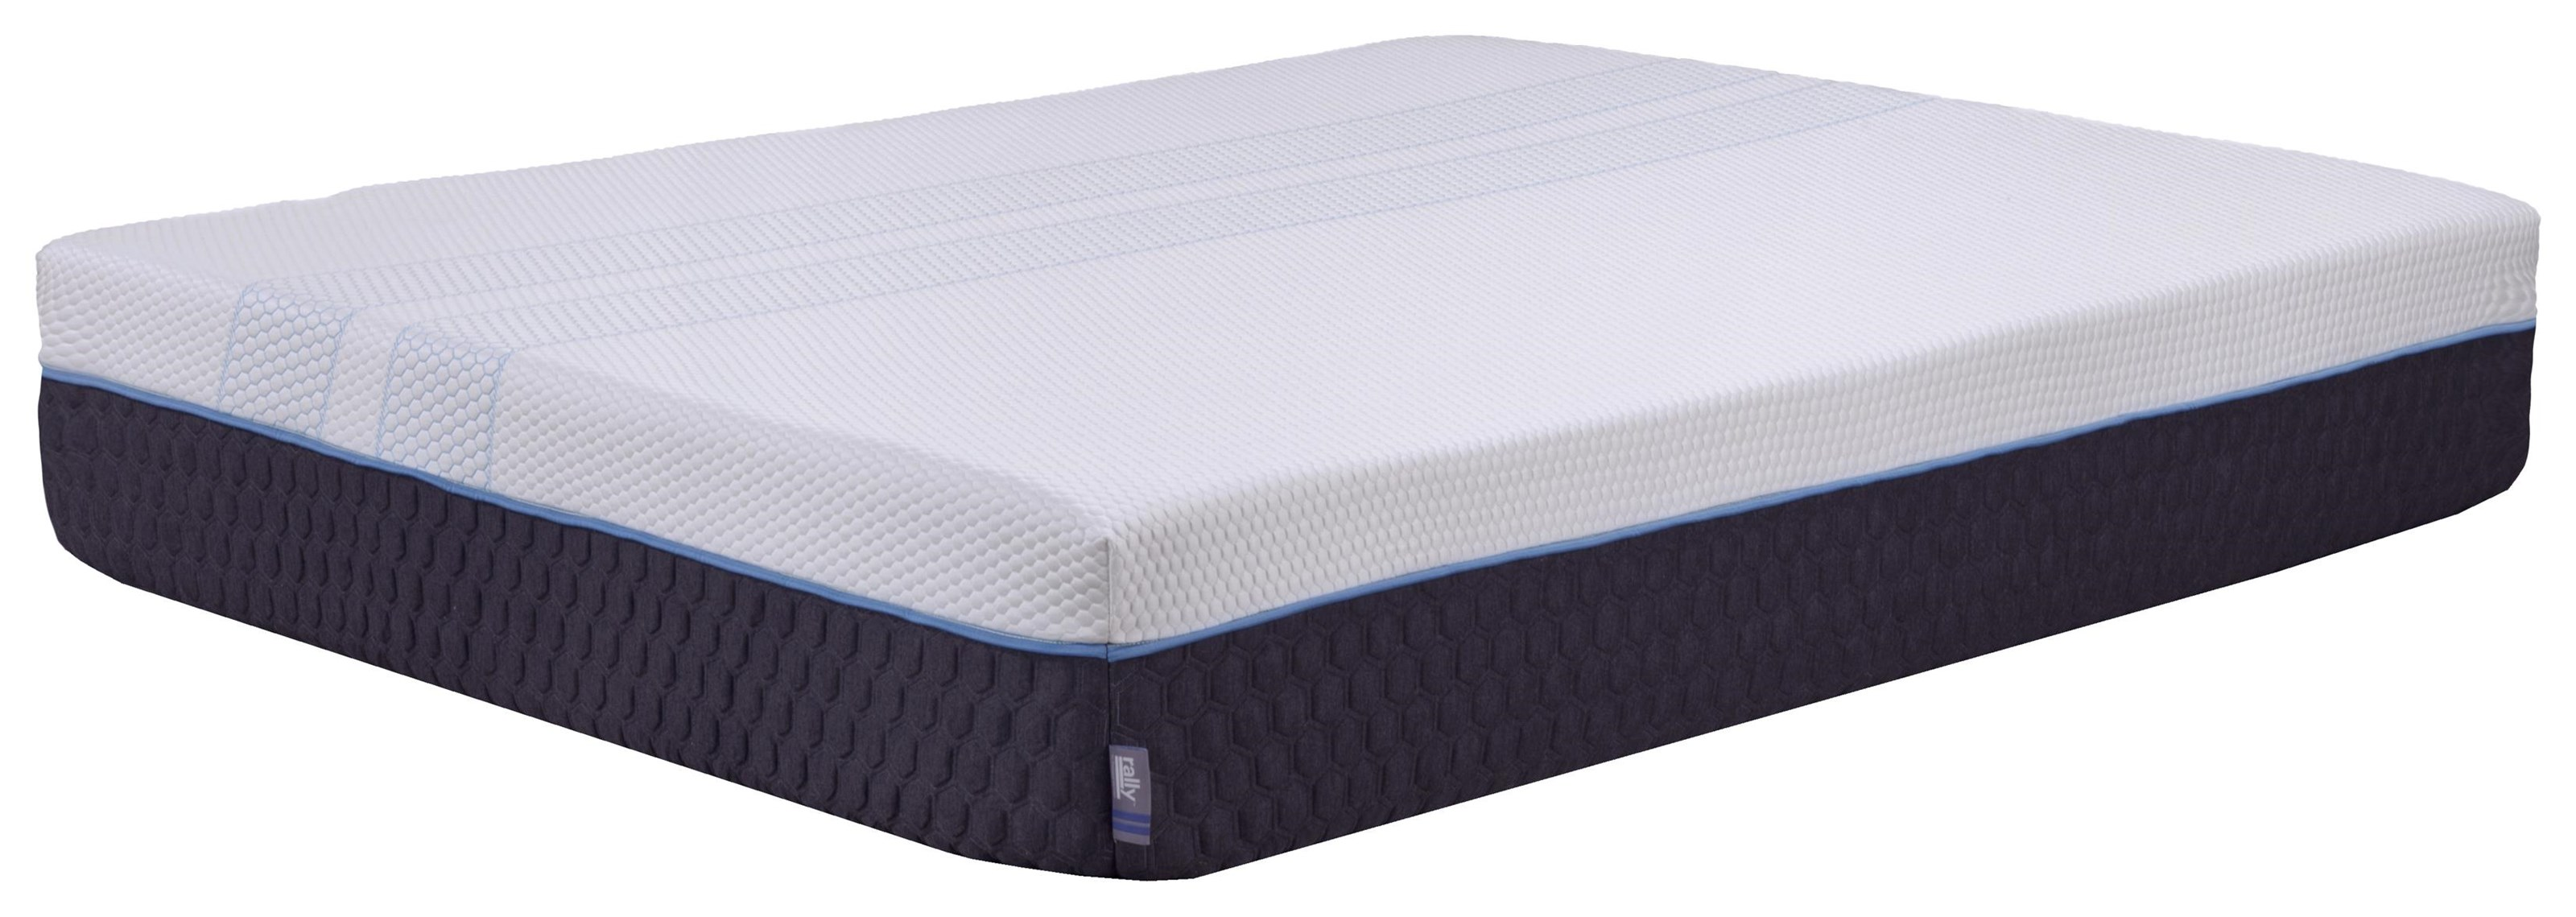 Rally Hybrid Cooling Firm Cal King Firm Hybrid Cooling Mattress in a B by Diamond Mattress at Beck's Furniture